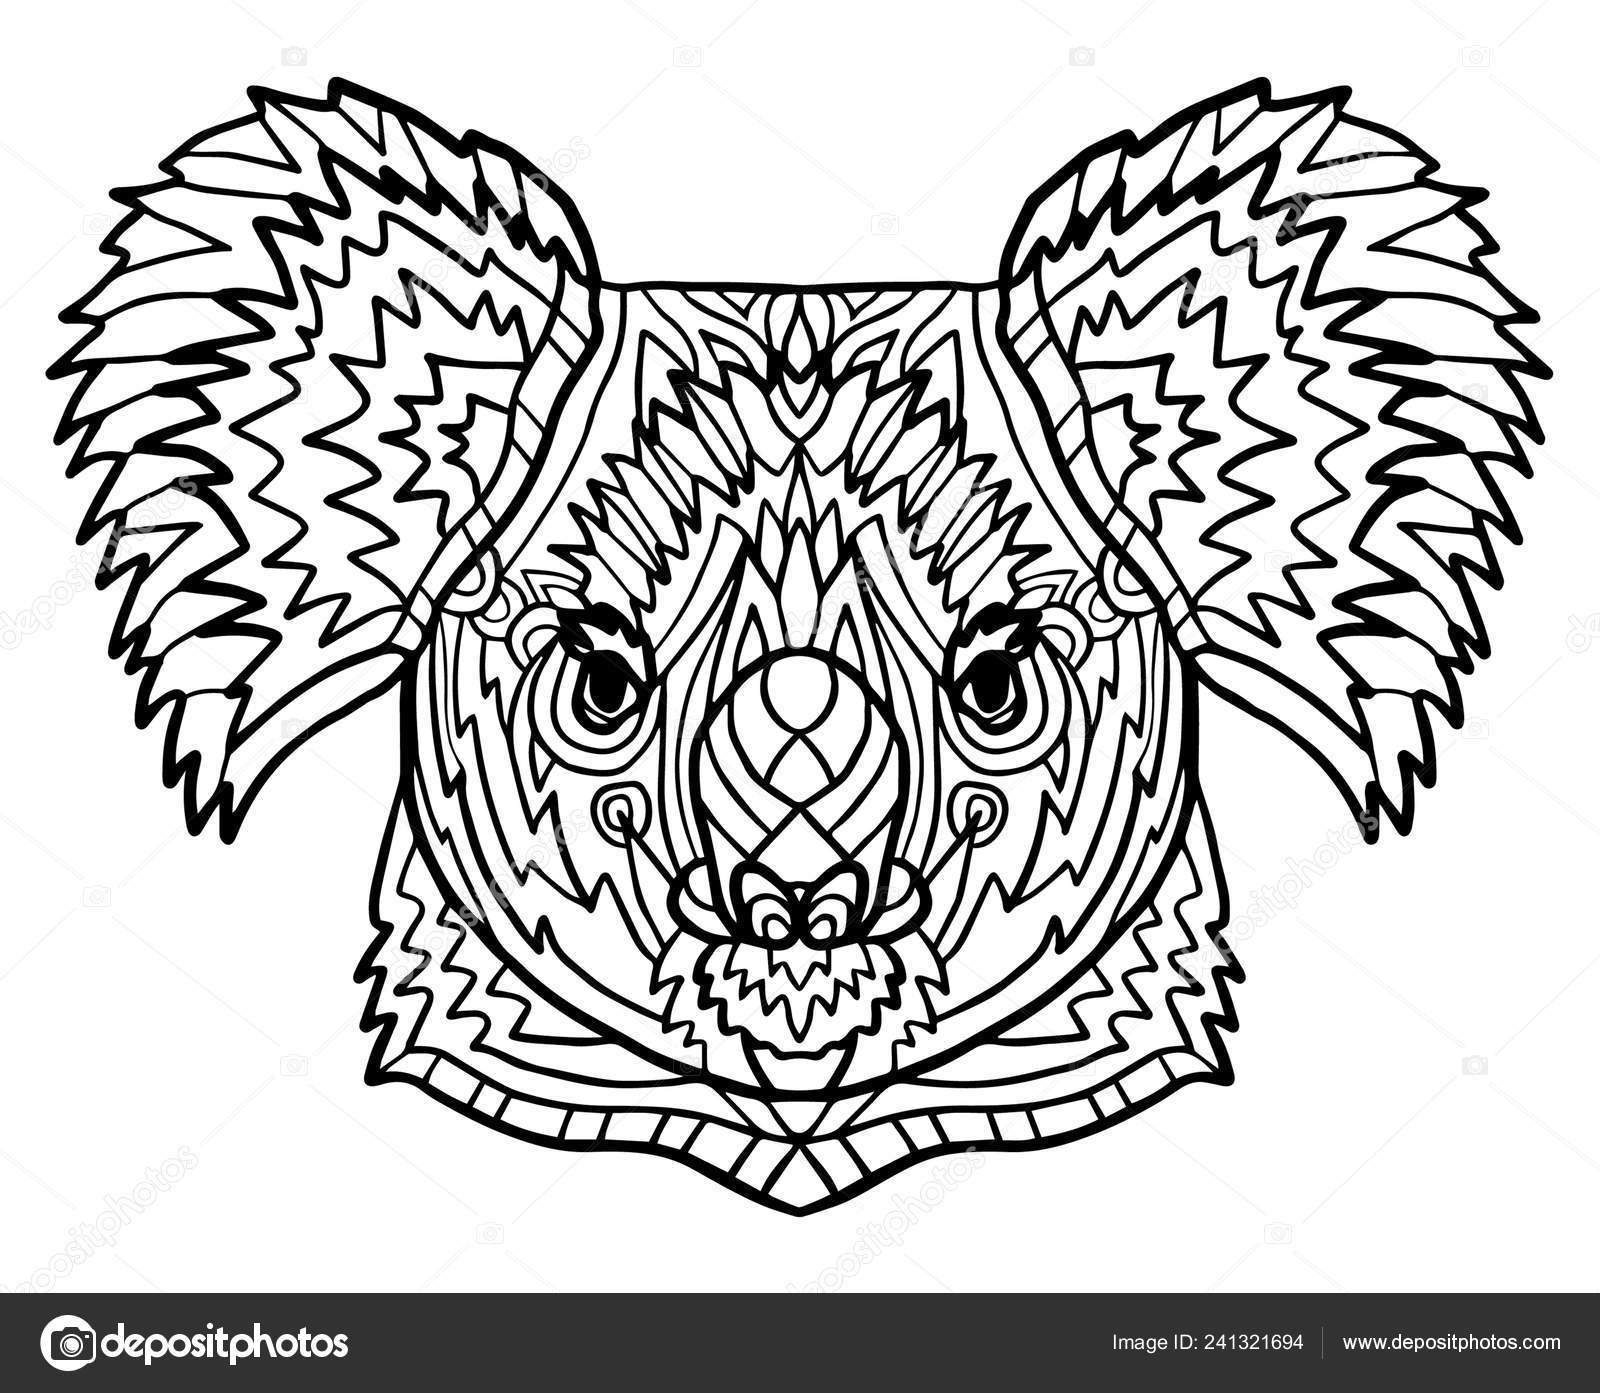 cheetah coloring pages for adults totem coloring page adults head koala zoo animal ethnic for adults cheetah coloring pages